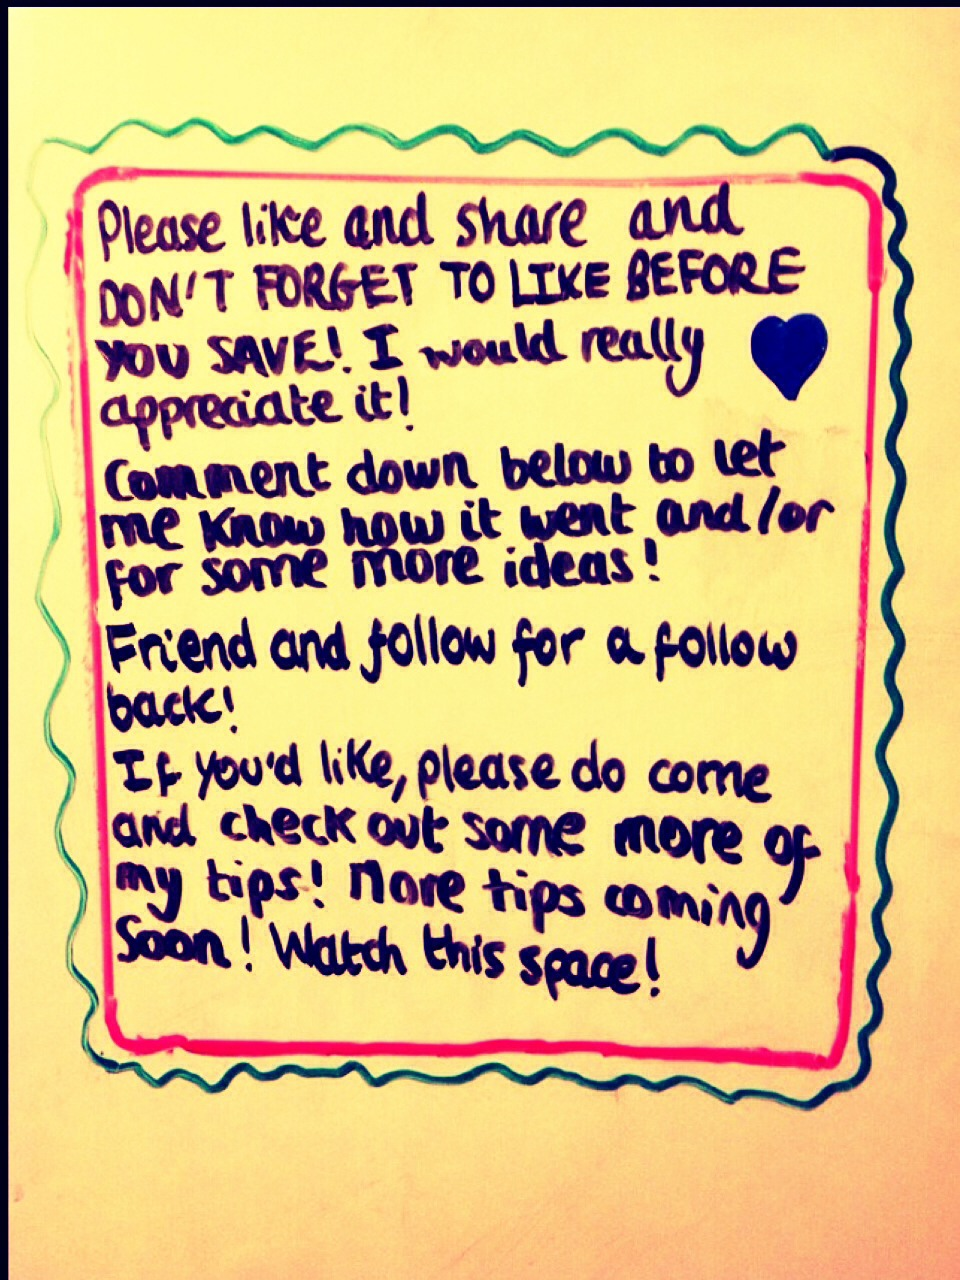 Please 👍 before saving! 💾👌✨💕😊